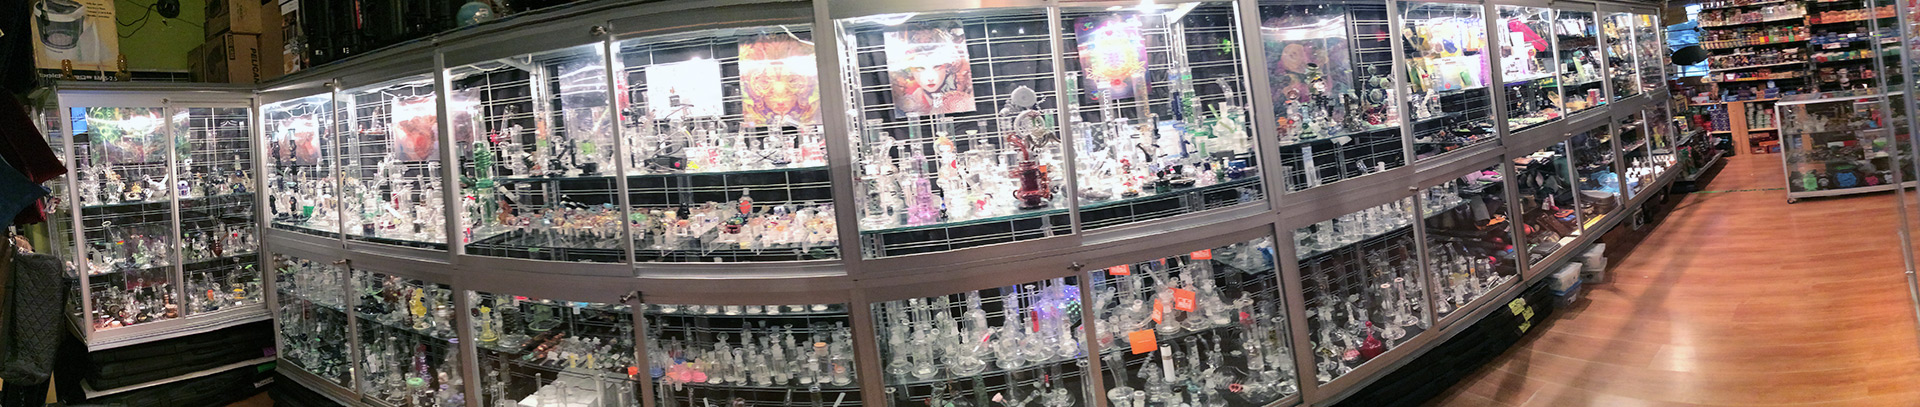 glass-pipes-waterpipe-waterpipes-water-pipe-pipes-smoke-shop-store-fort-myers-ft-myers-estero-naples-florida-fl-treasure-chest